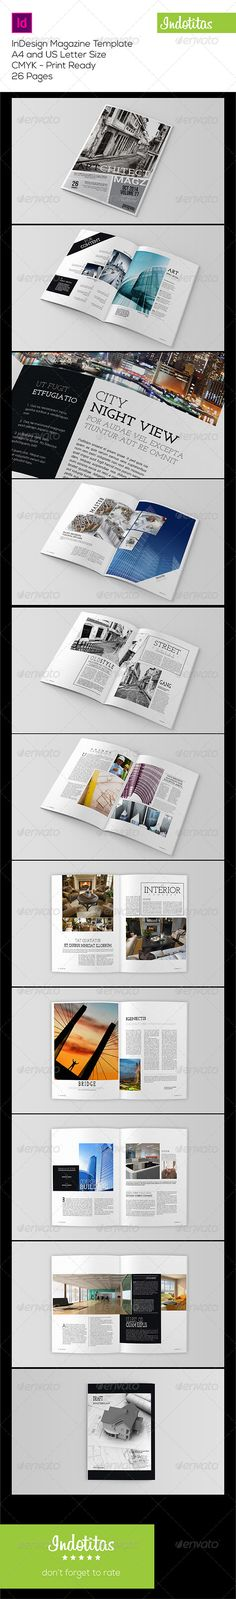 Indesign Magazine Template — InDesign INDD #elegant #magazine • Available here → https://graphicriver.net/item/indesign-magazine-template/7897723?ref=pxcr